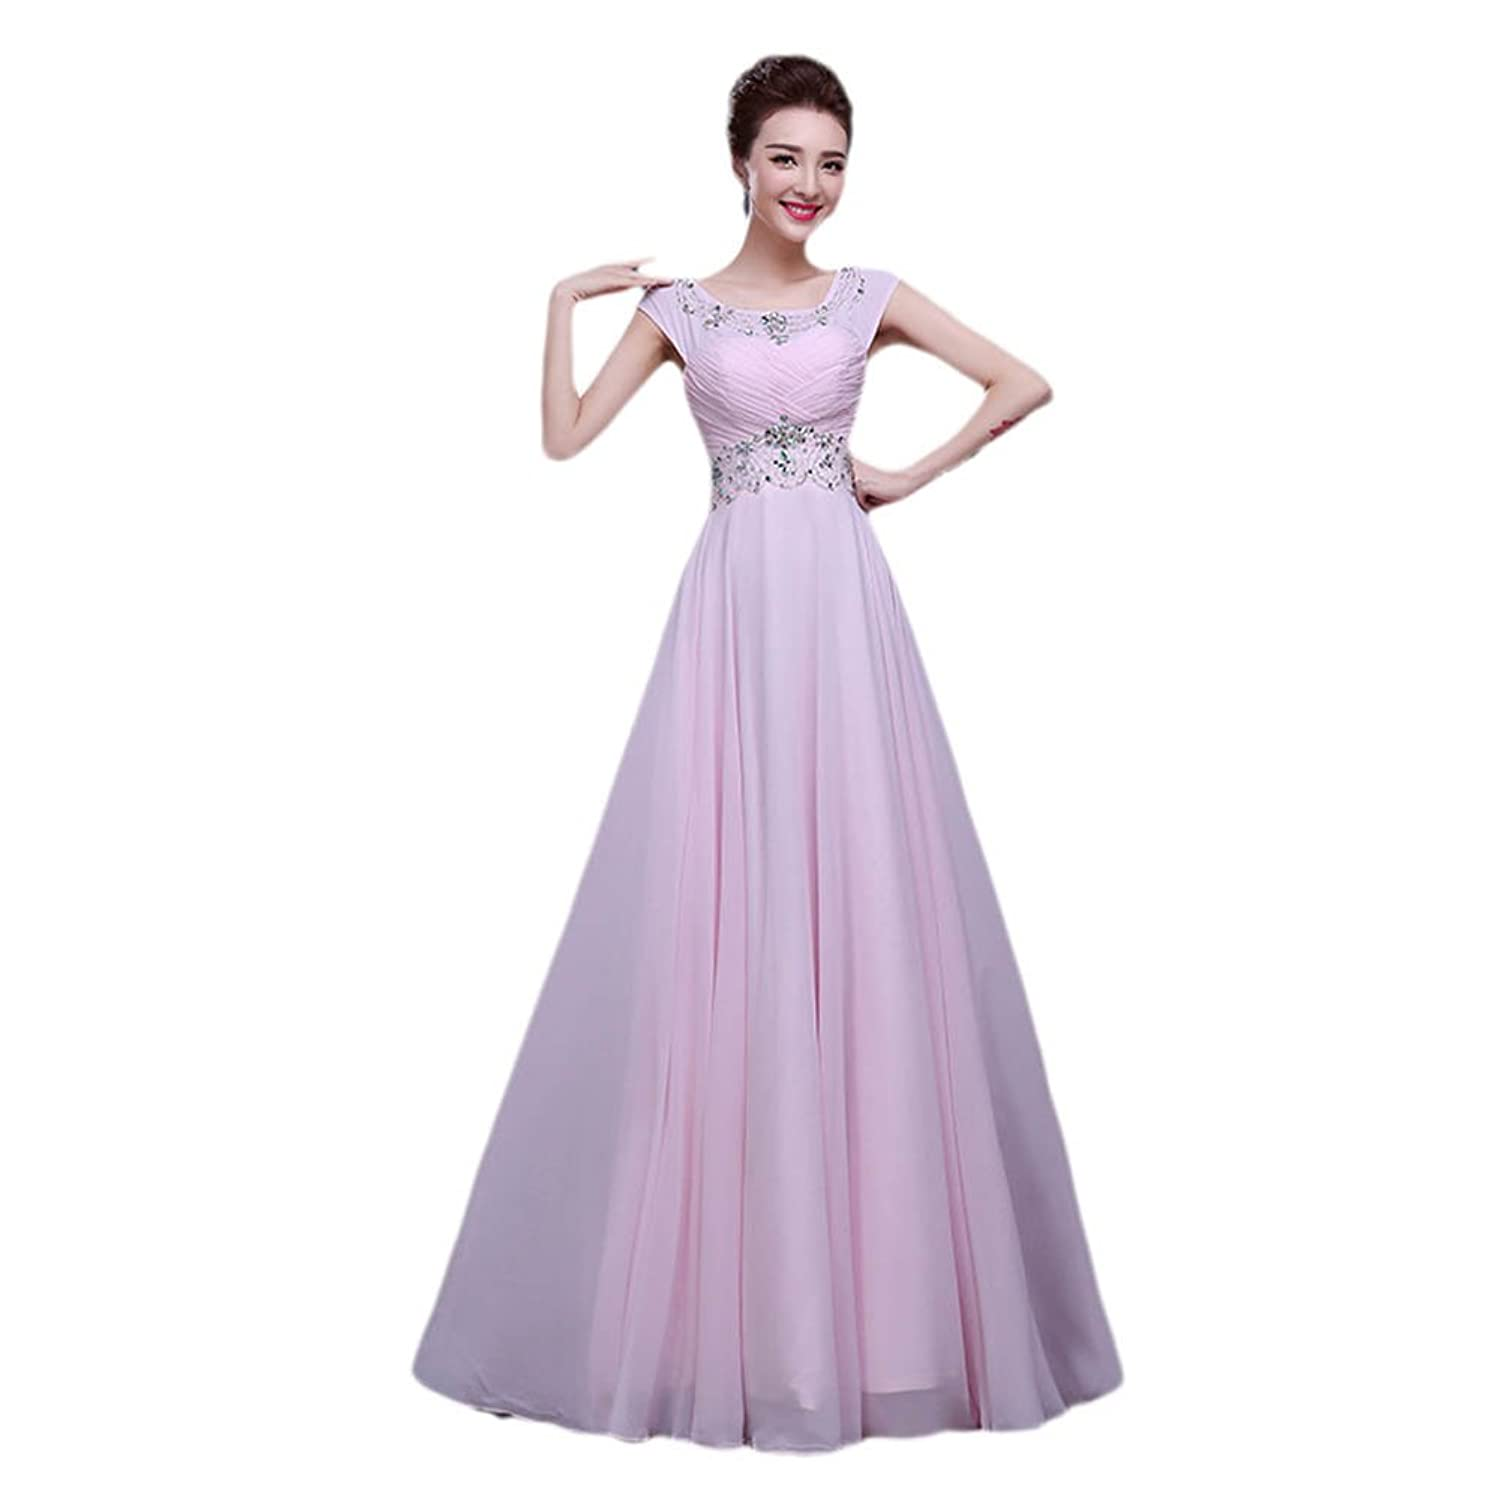 Vimans? Women's 2016 Long Pink Scoop Rhinestone Pleated Prom Evening Dresses